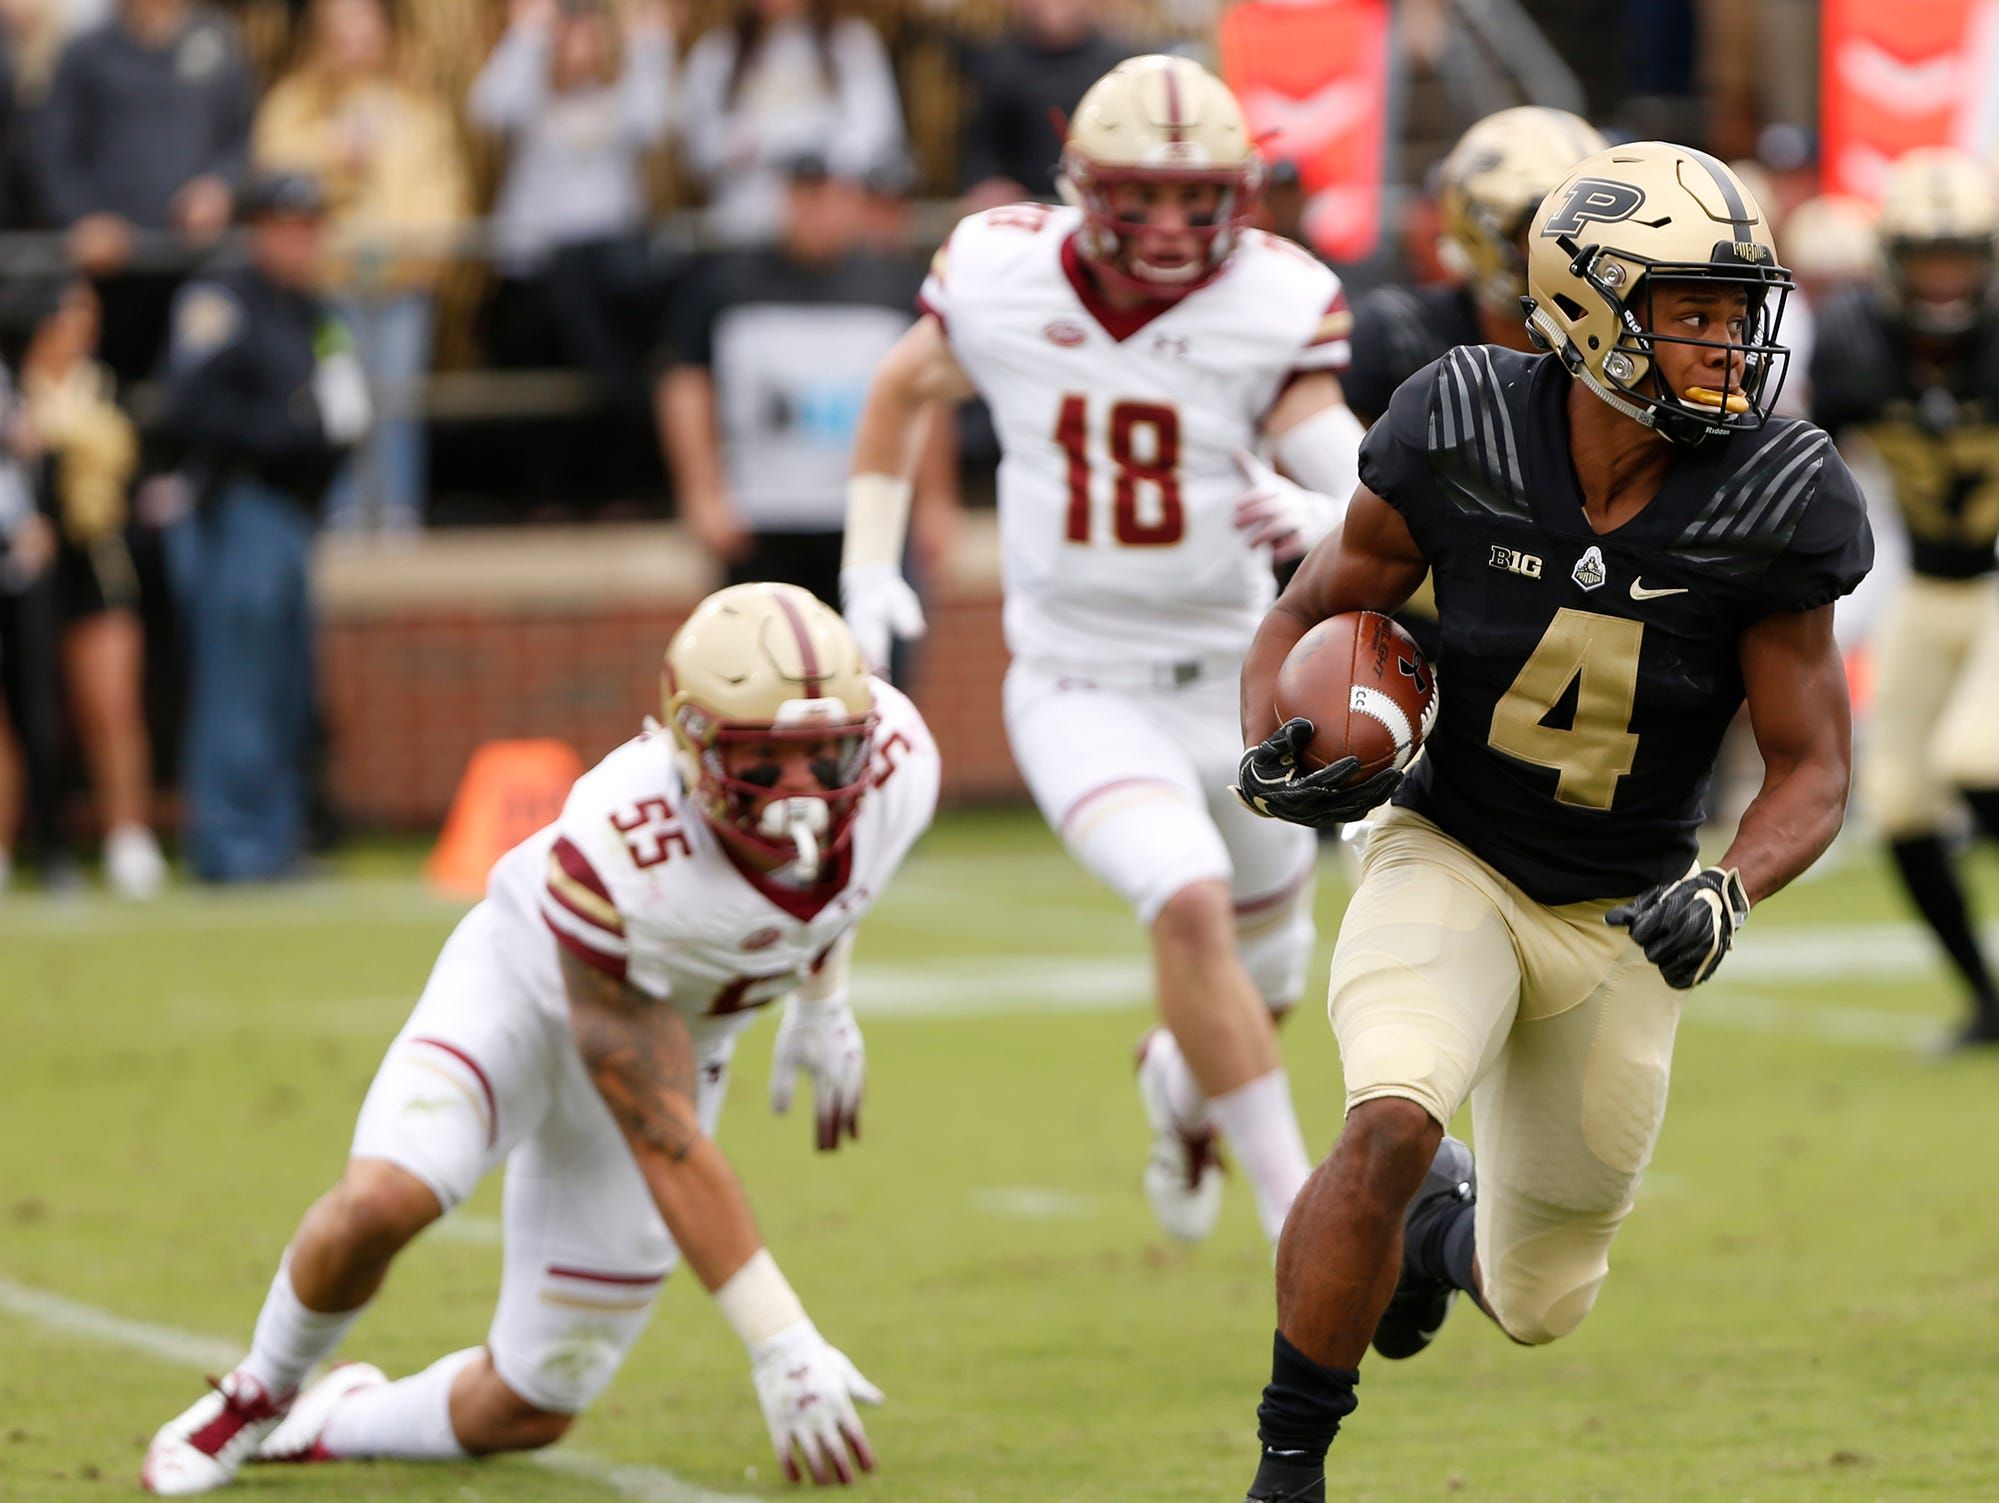 Rondale Moore of Purdue on a first half kick return against Boston College Saturday, September 22, 2018, in Ross-Ade Stadium.